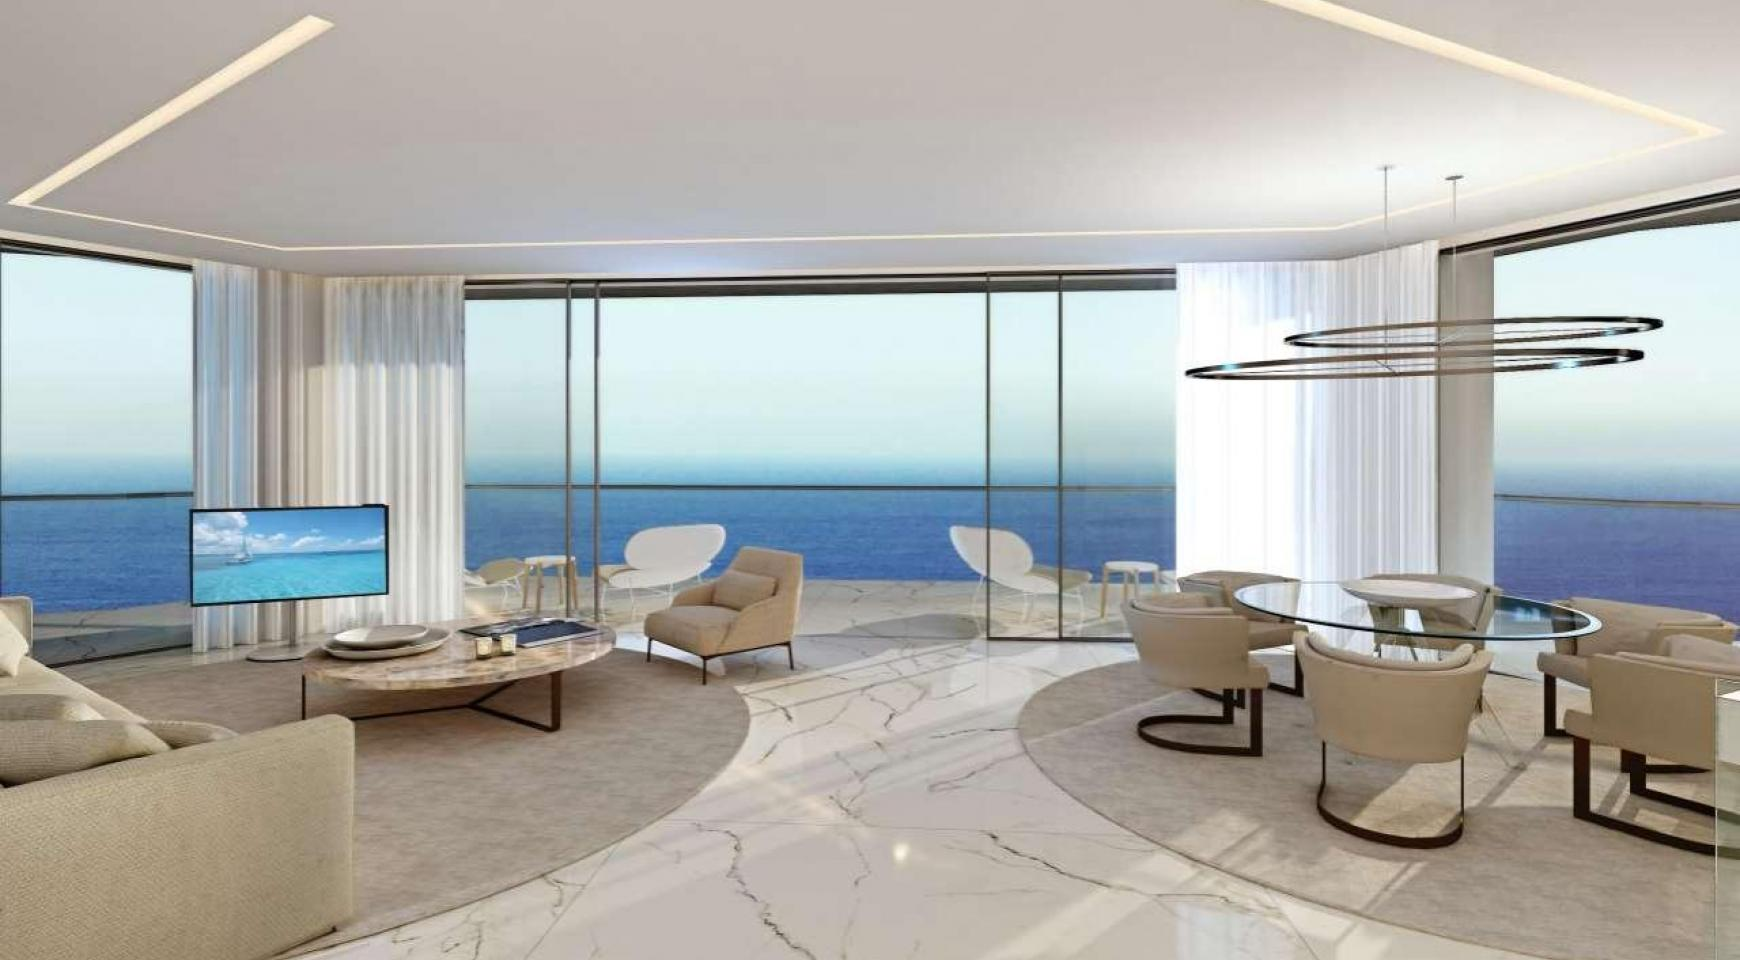 2 Bedroom Apartment in a New Project by the Sea in the City Centre - 7